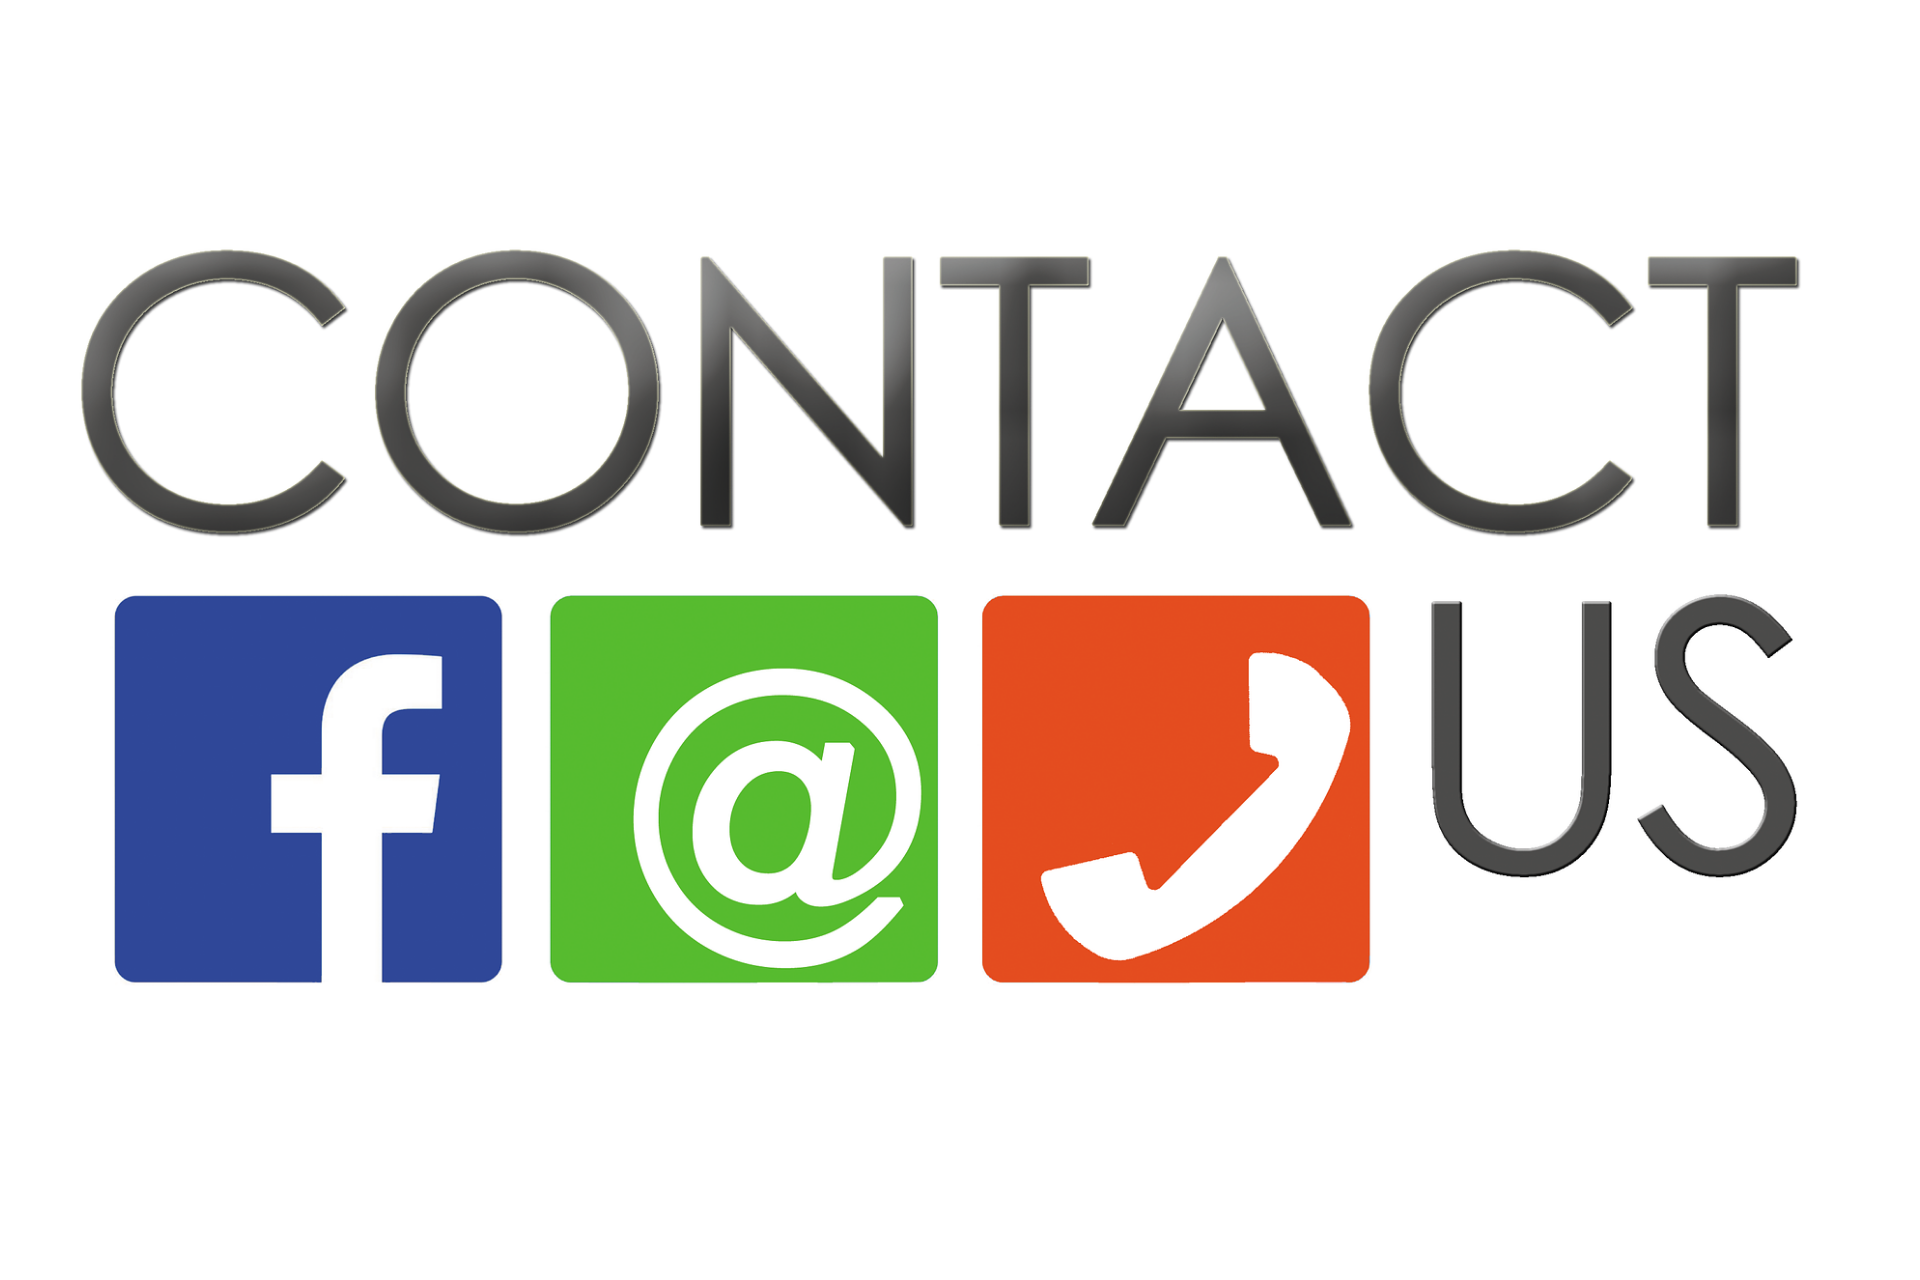 Contact Algorithmic Global thought phone, email, or social media.